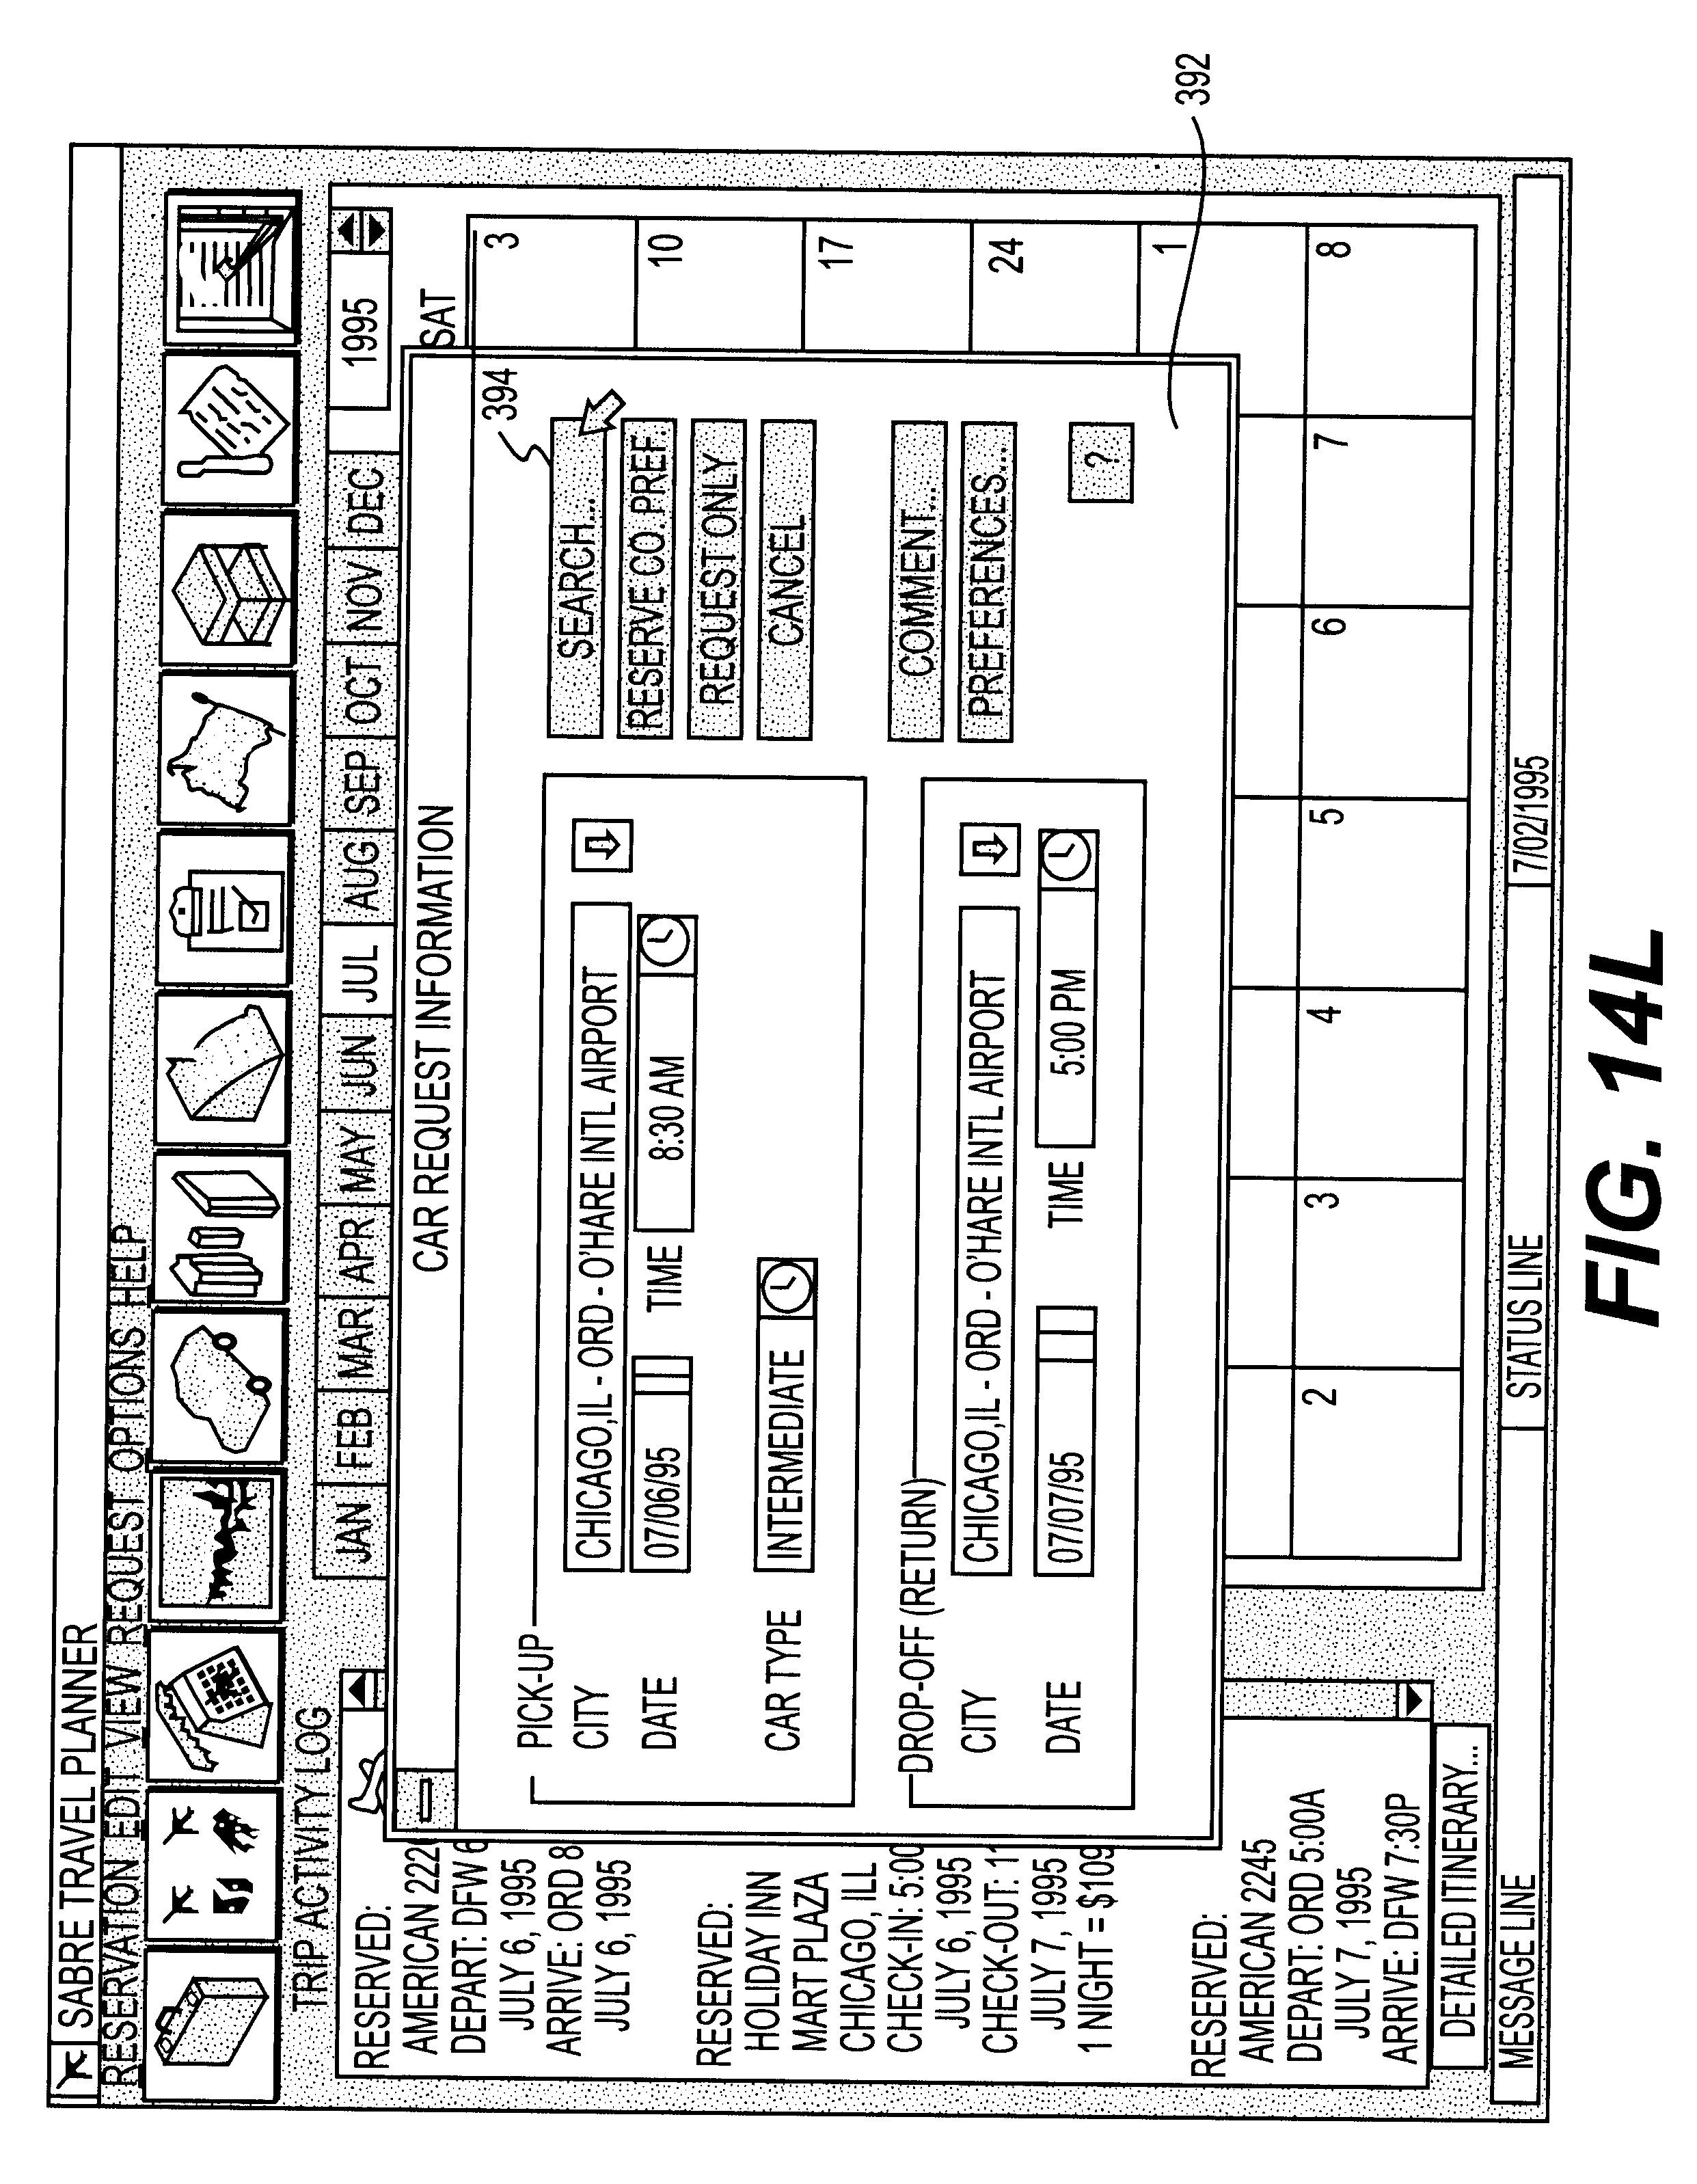 Free Receipt Generator Pdf Patent Us  System For Corporate Travel Planning And  Donation Receipt Pdf with Invoice Is Excel Patent Drawing Excel Invoicing Template Pdf